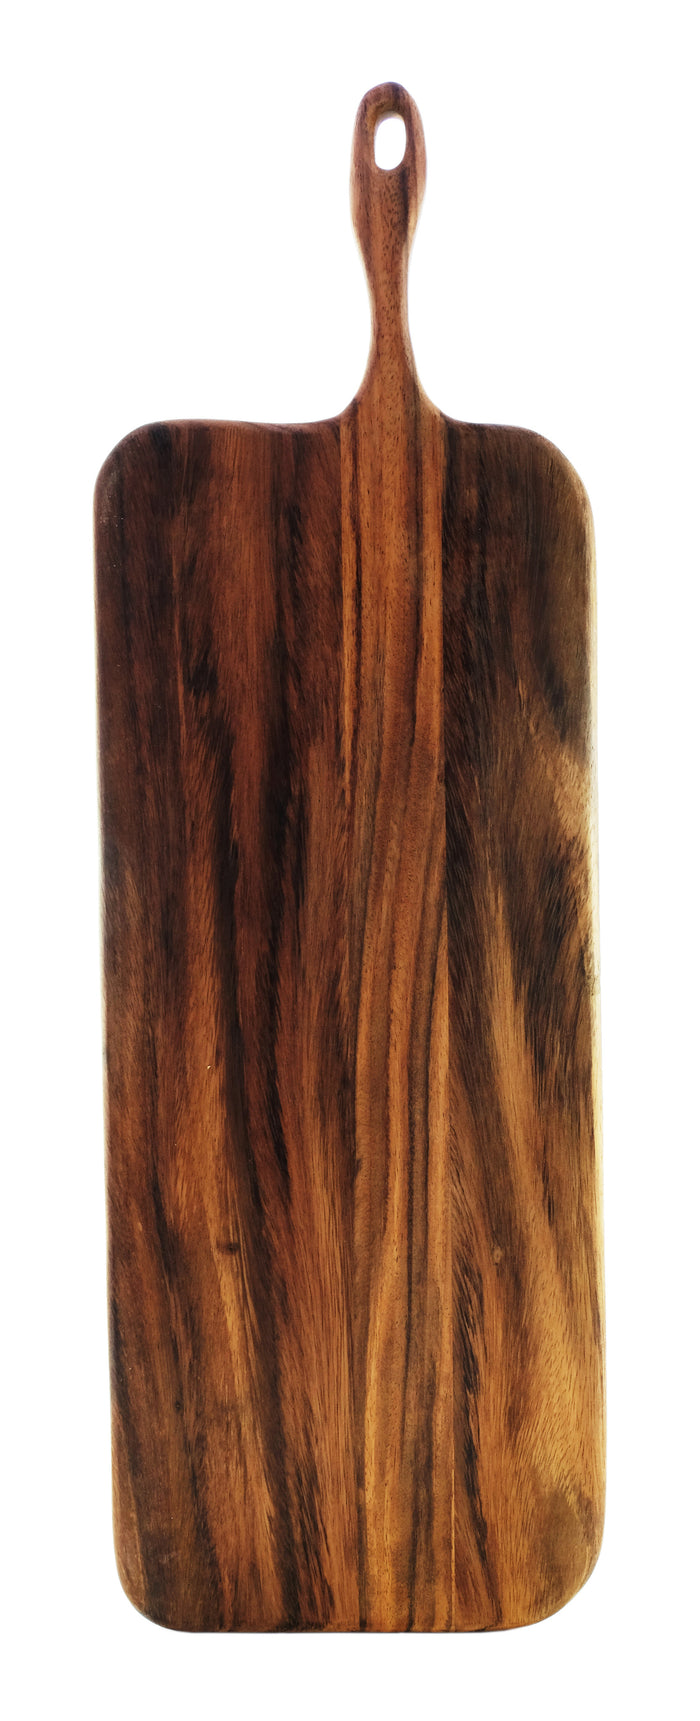 "Handled Board - Extra Long 10"" x 24""  serving board - PasParTou"